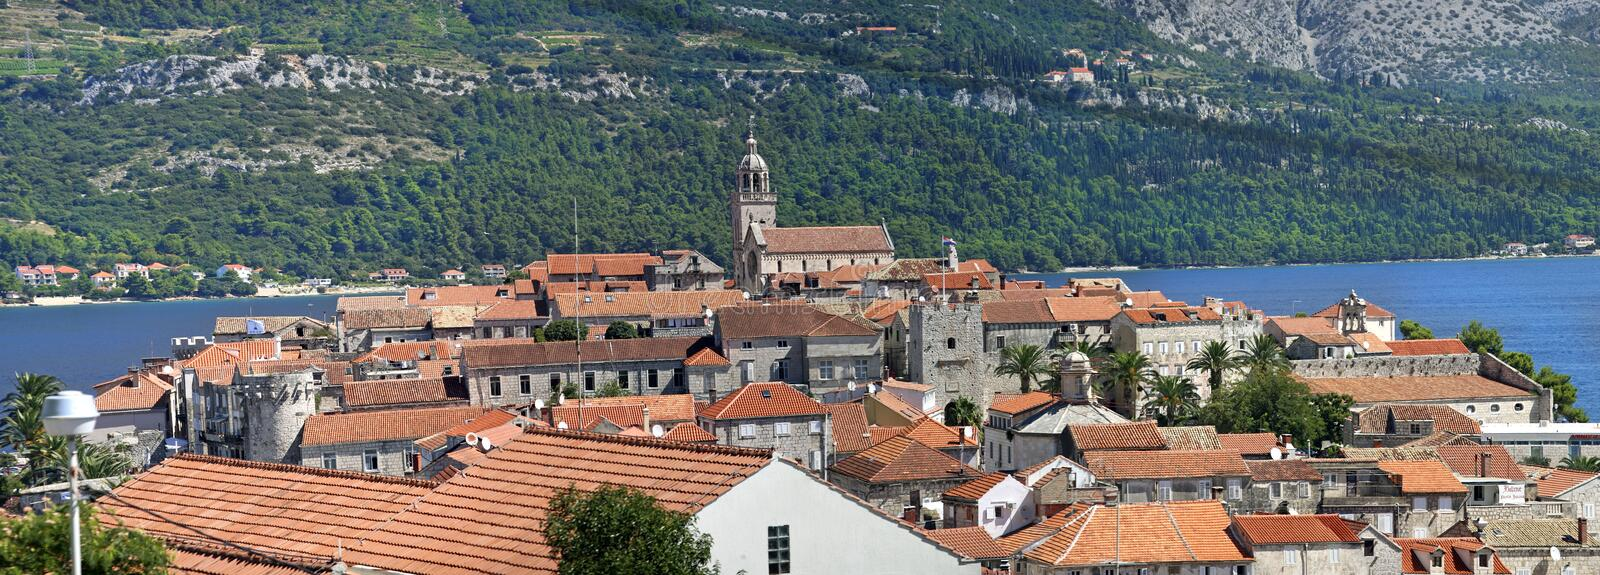 Download Korcula stock photo. Image of cars, bright, architecture - 23919344